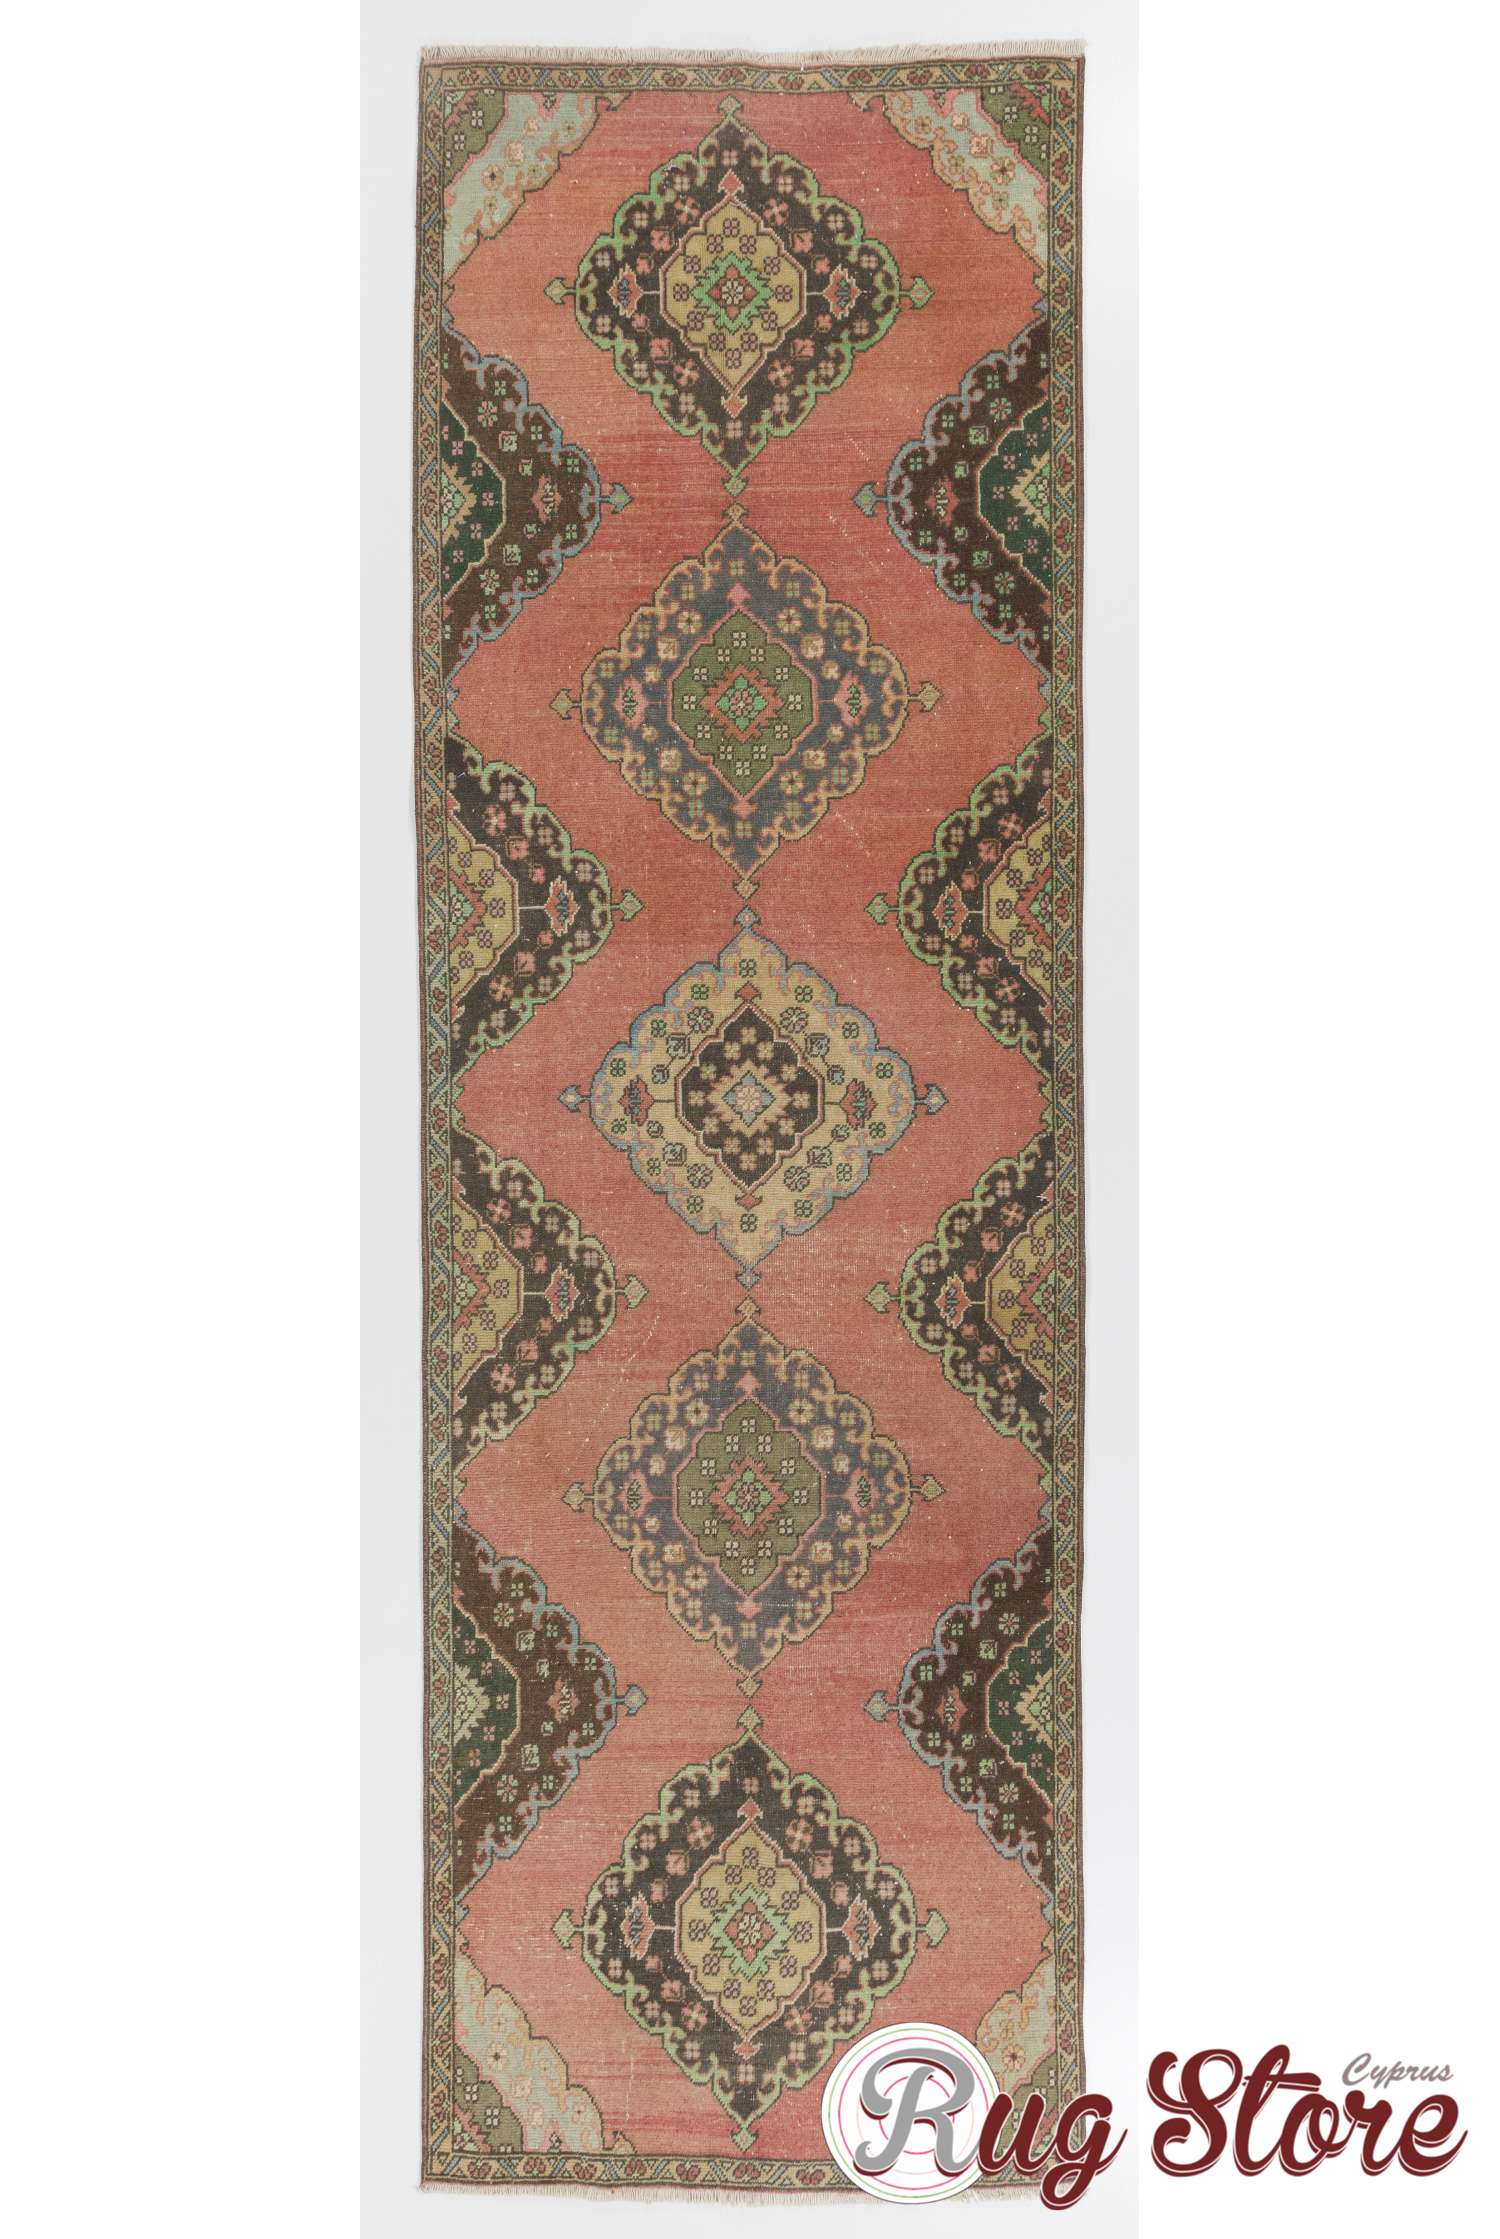 Antique Washed Runner Rug Peach Brown And Blue Color